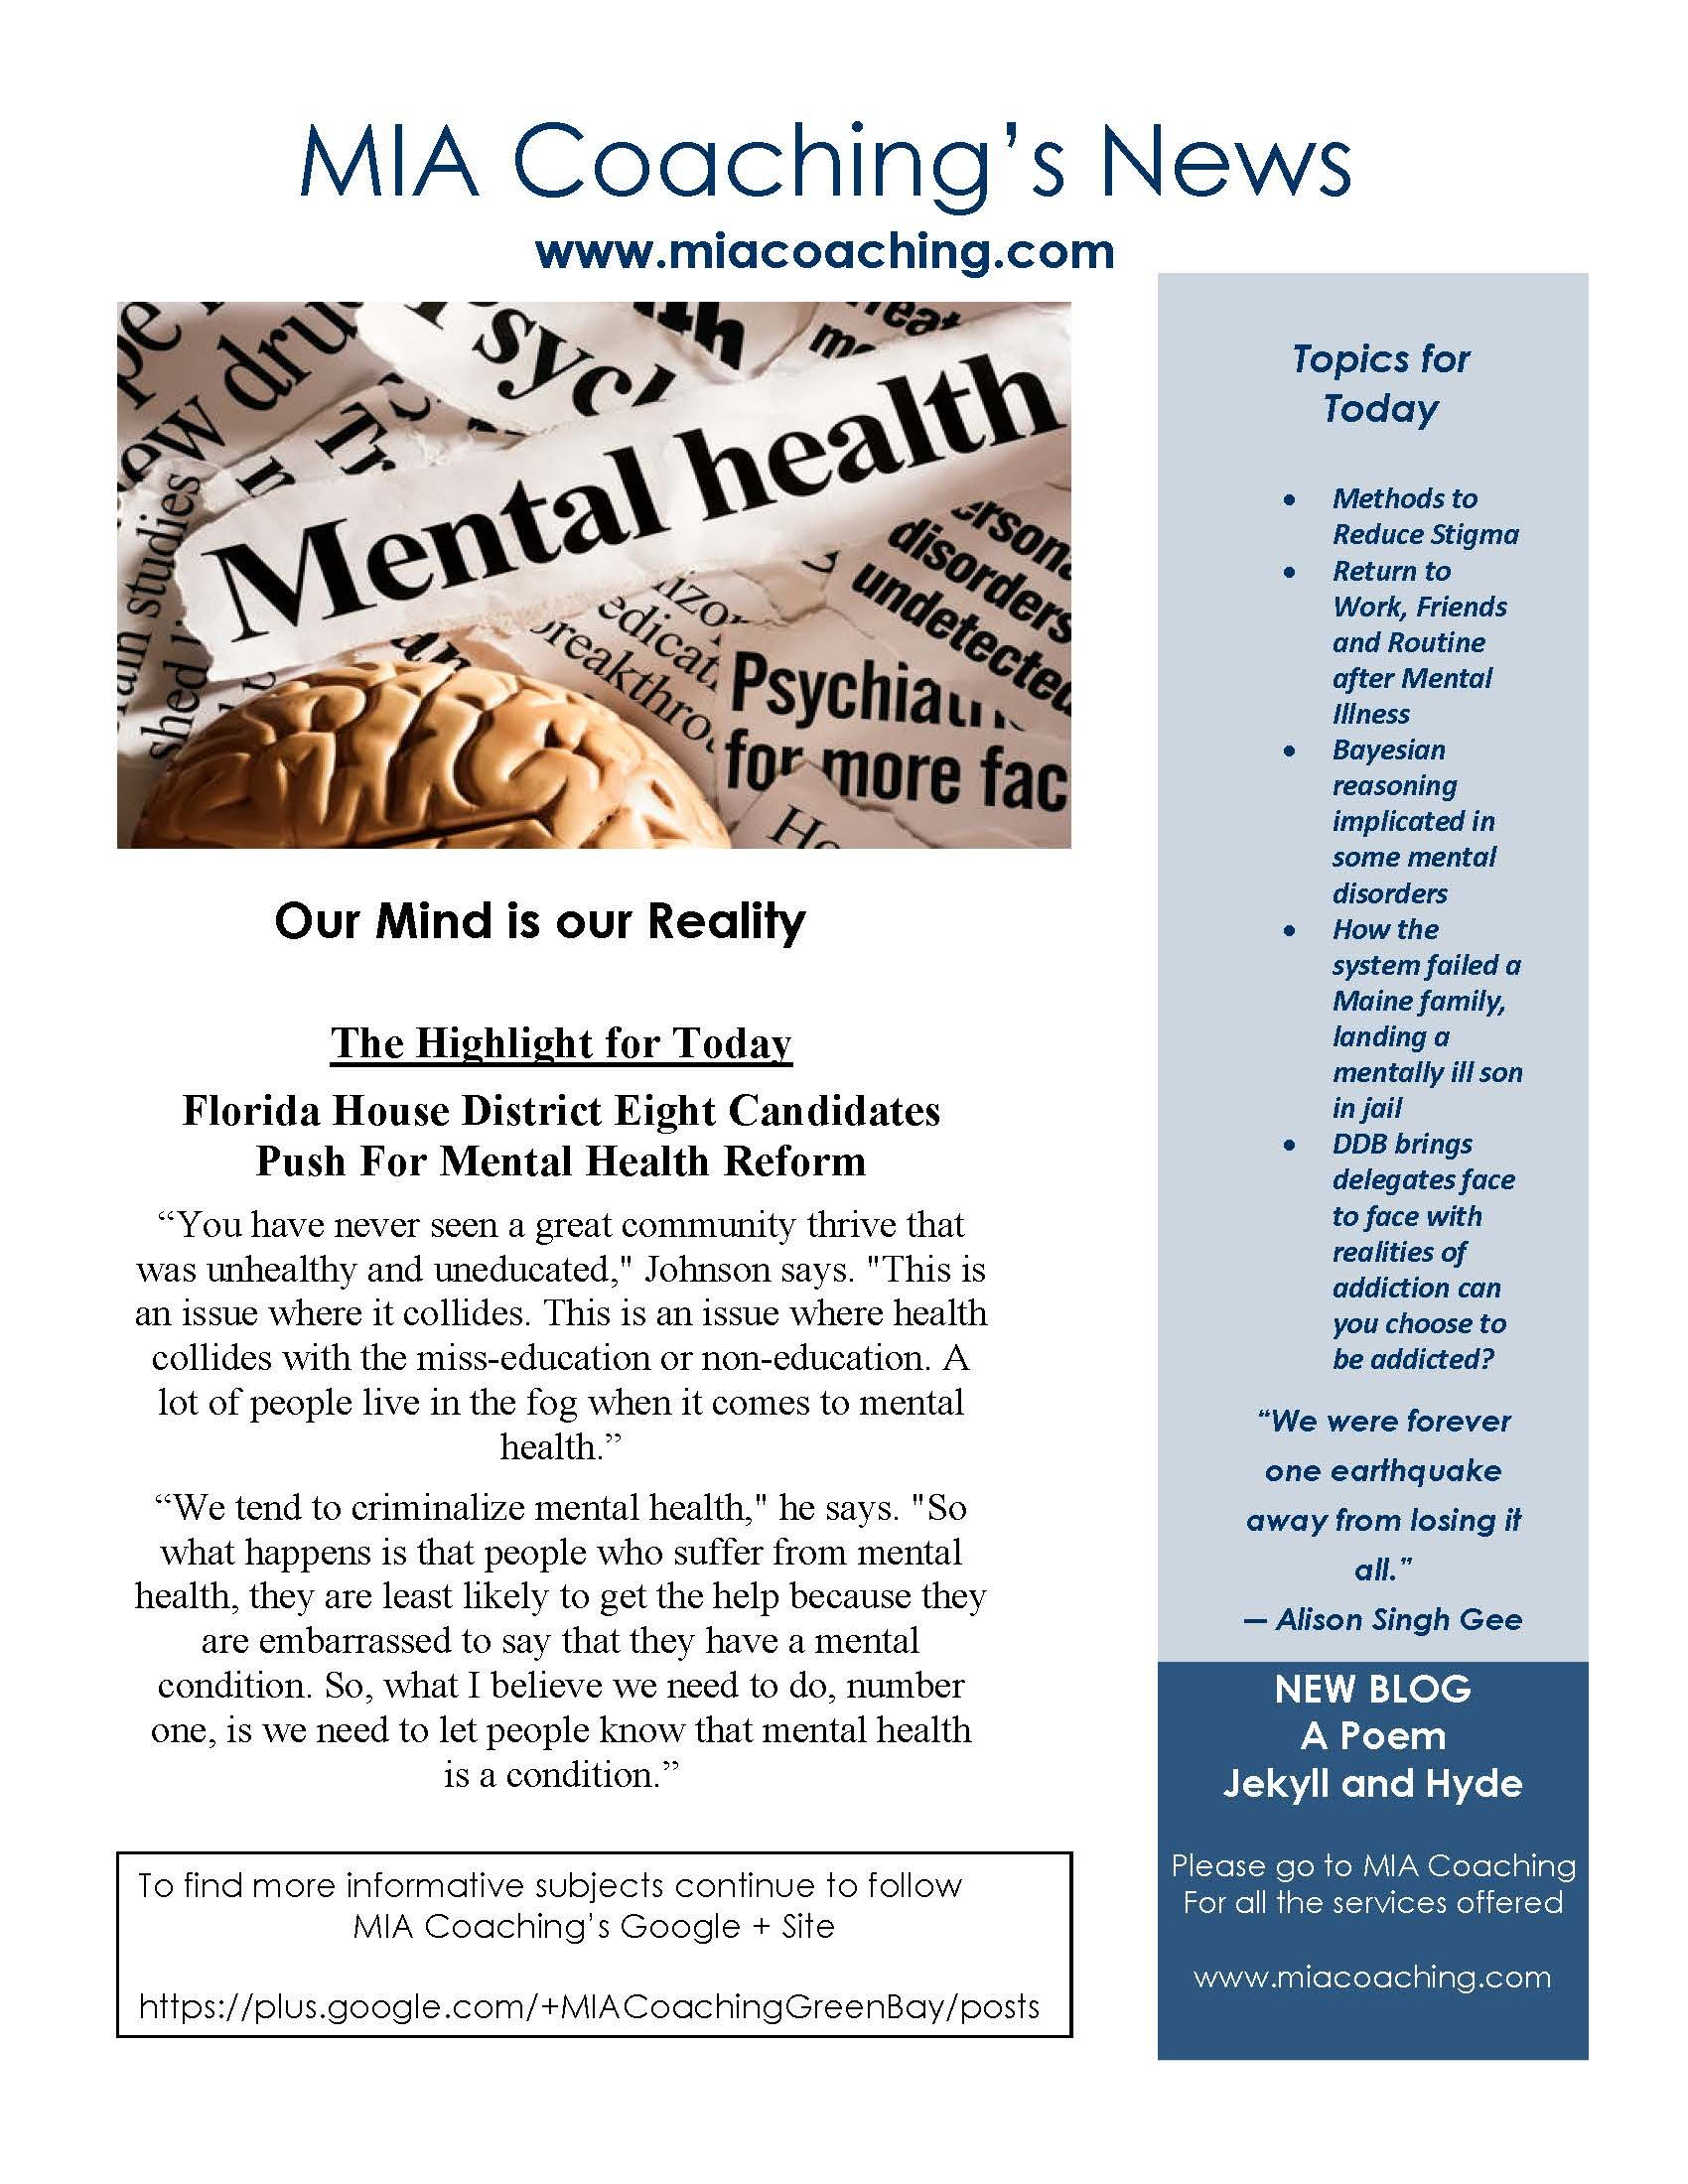 Pin on News about Mental Illness on G + Articles at https